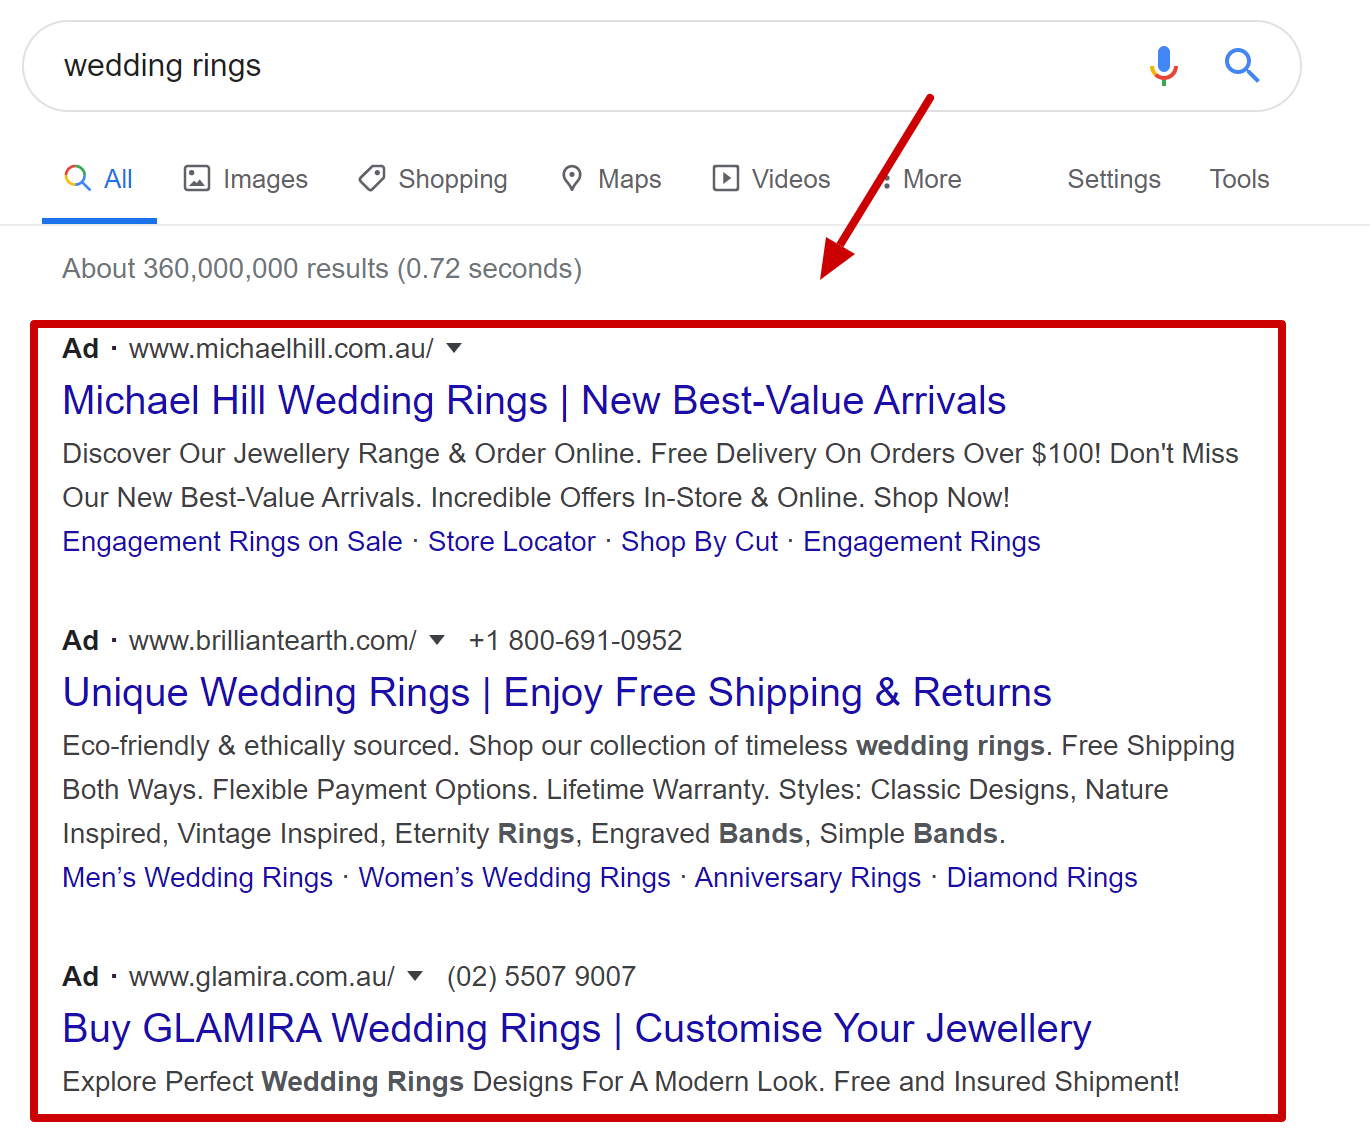 google-text-ads-example-wedding-ring